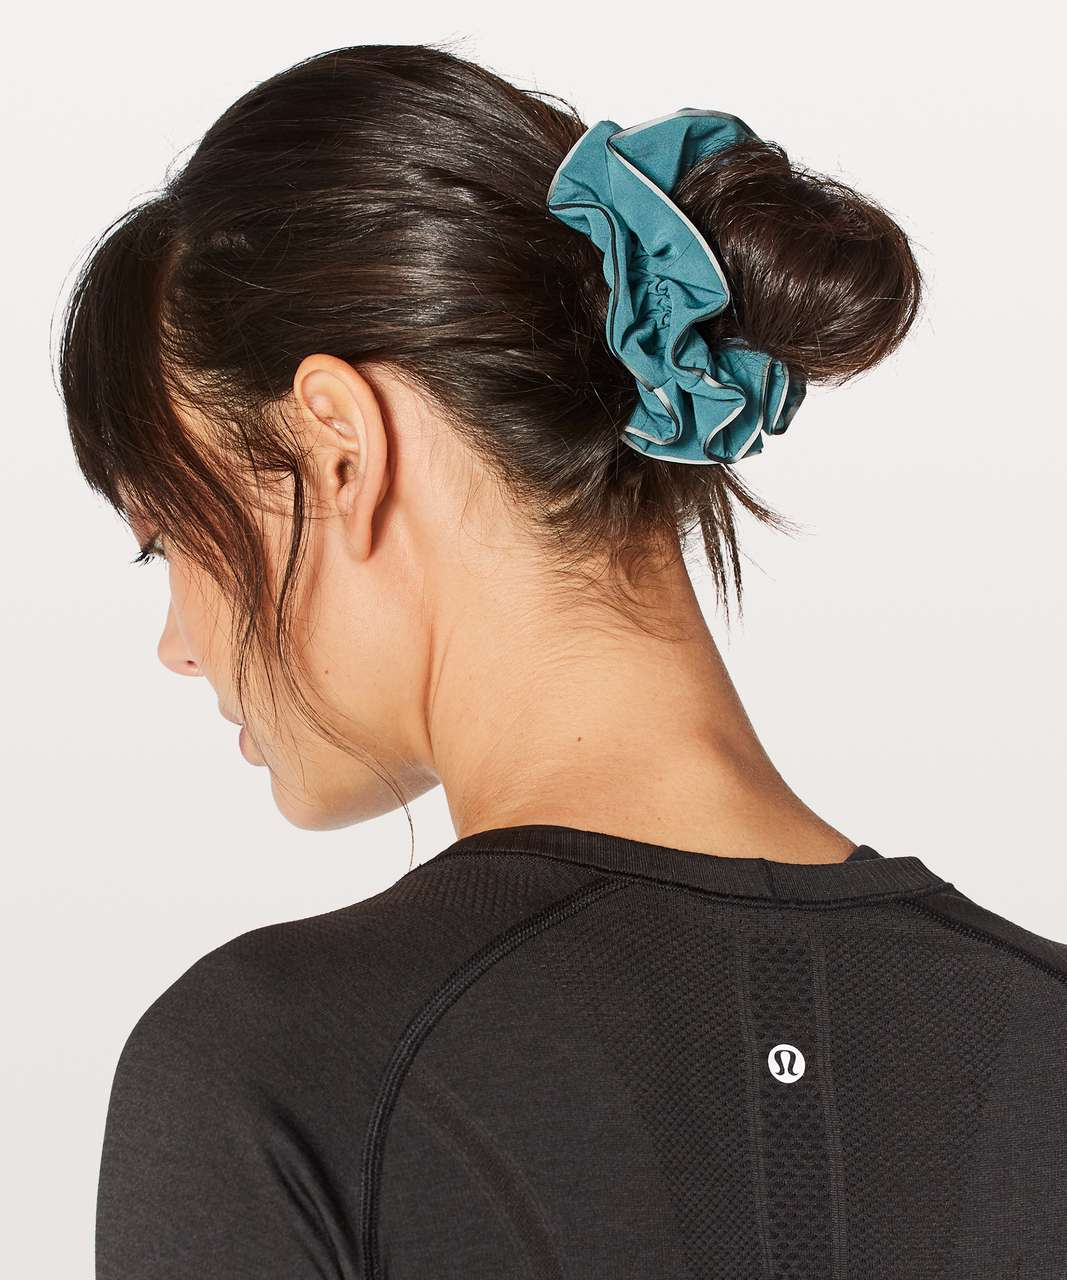 Lululemon Light Locks Scrunchie - Persian Blue